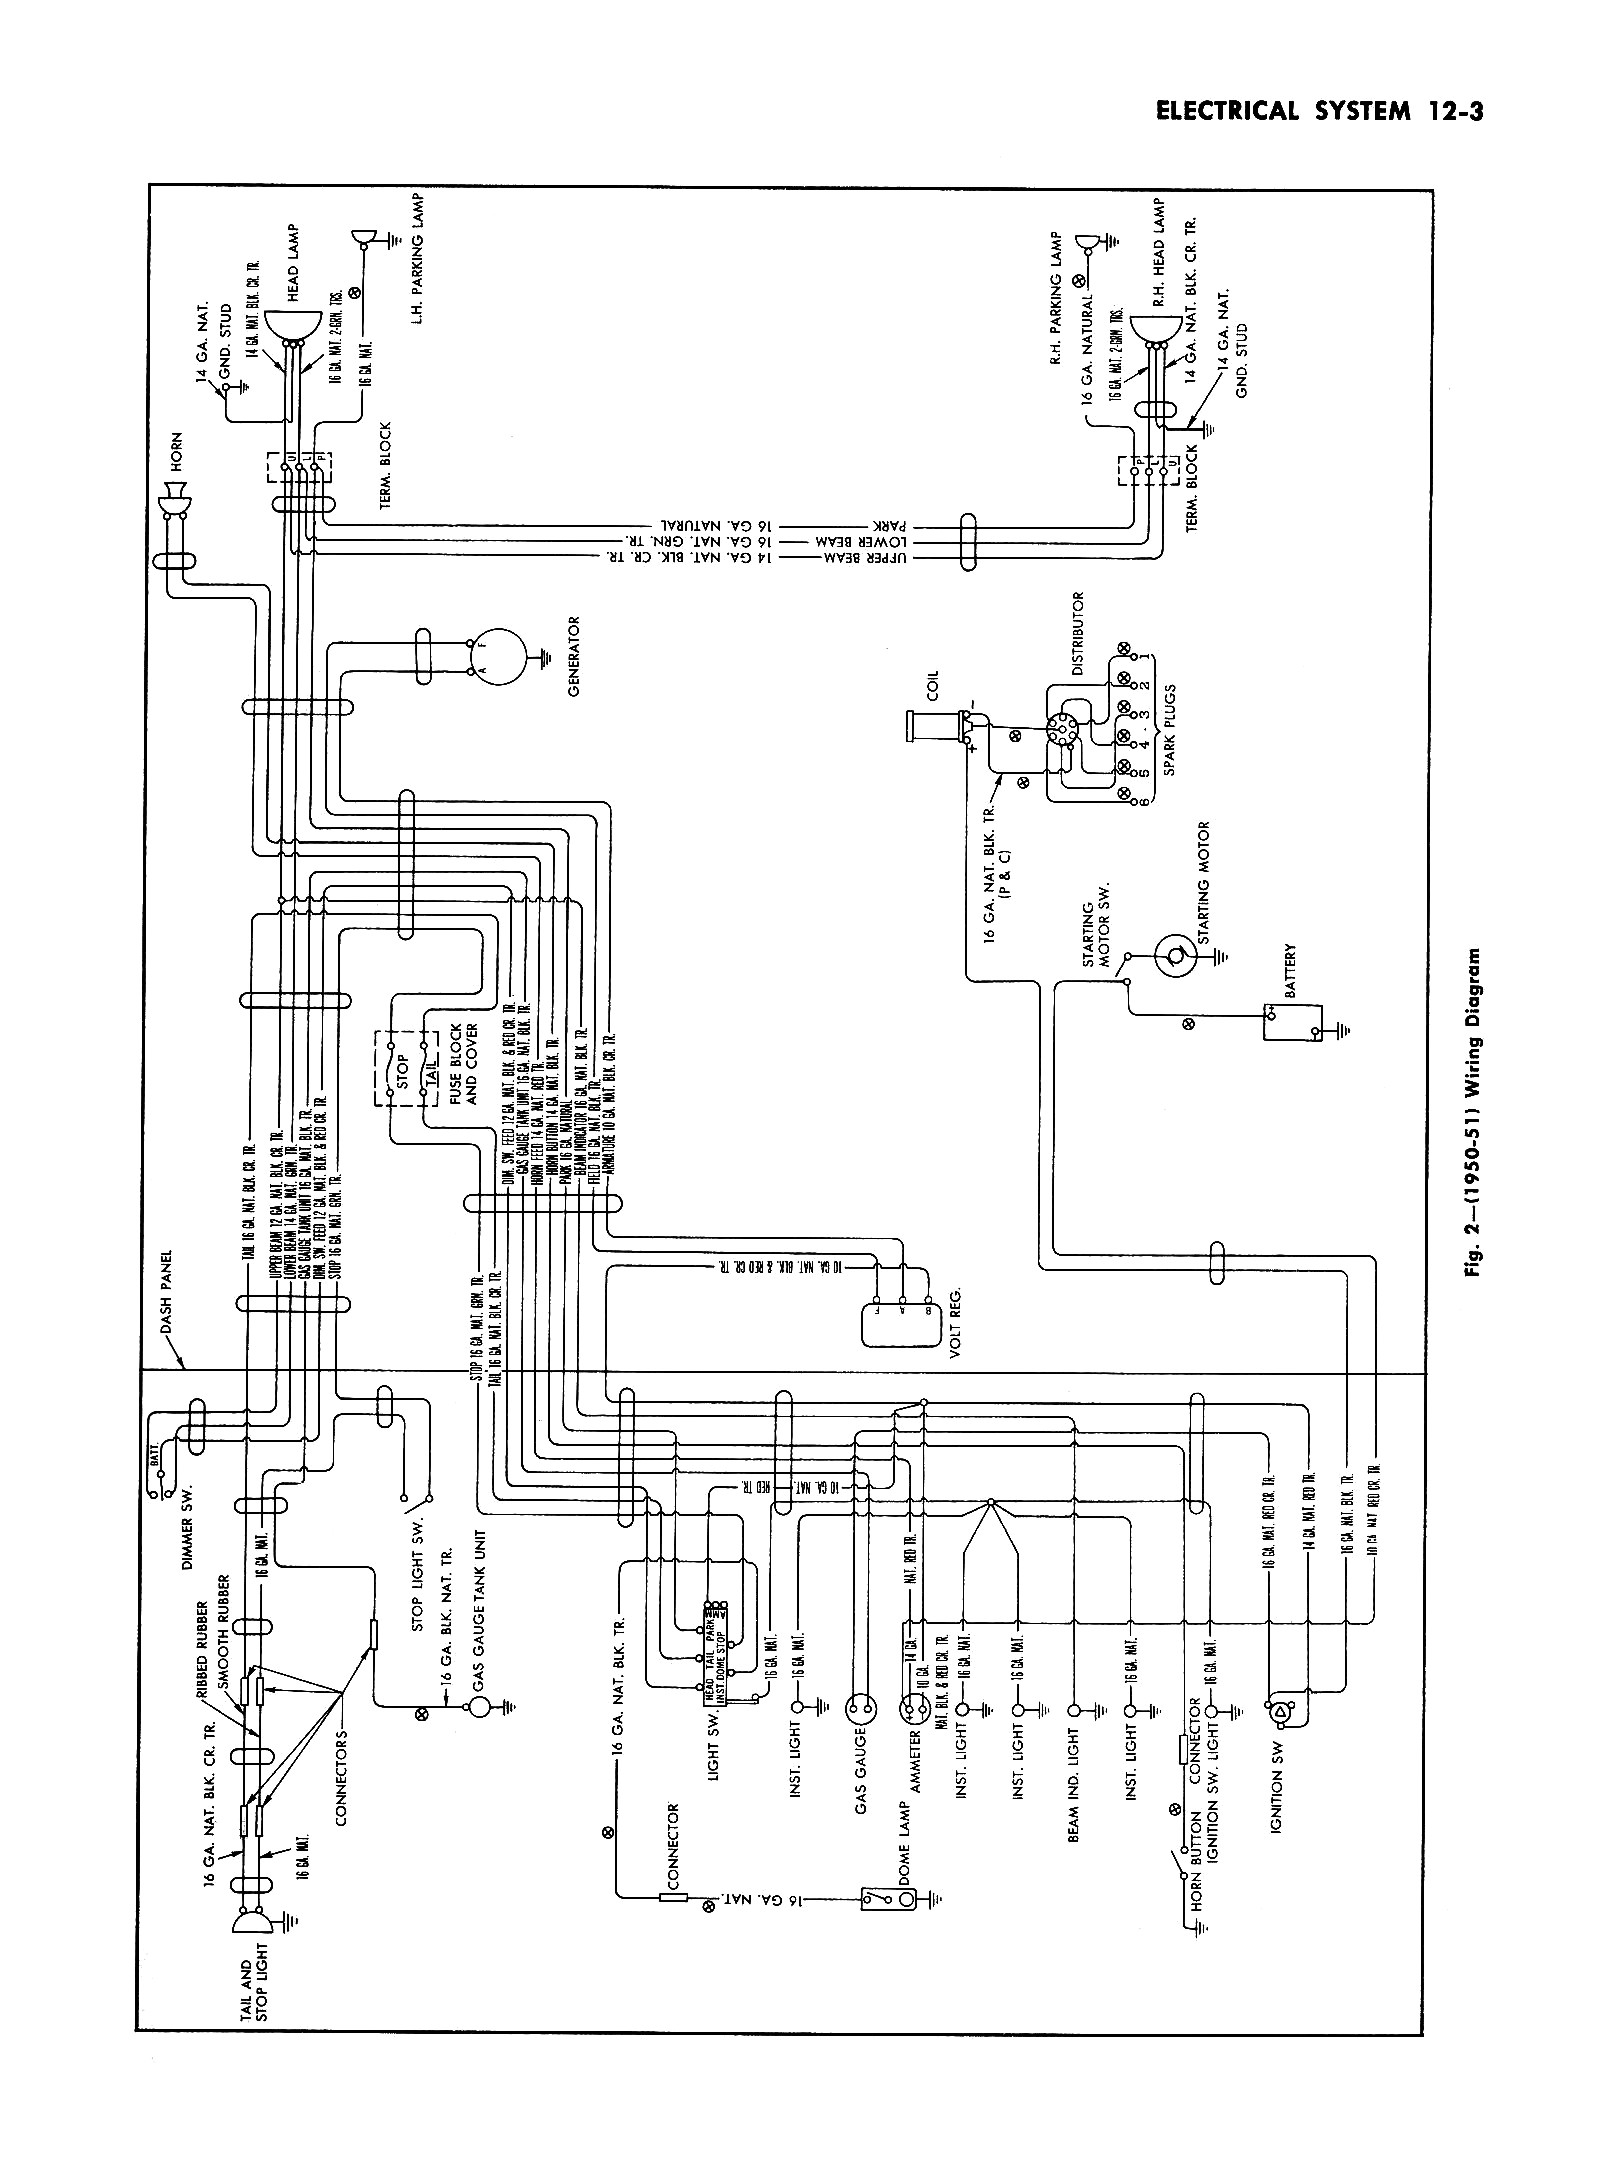 Wiring Diagram For 1950 Nash - Res Wiring Diagrams on